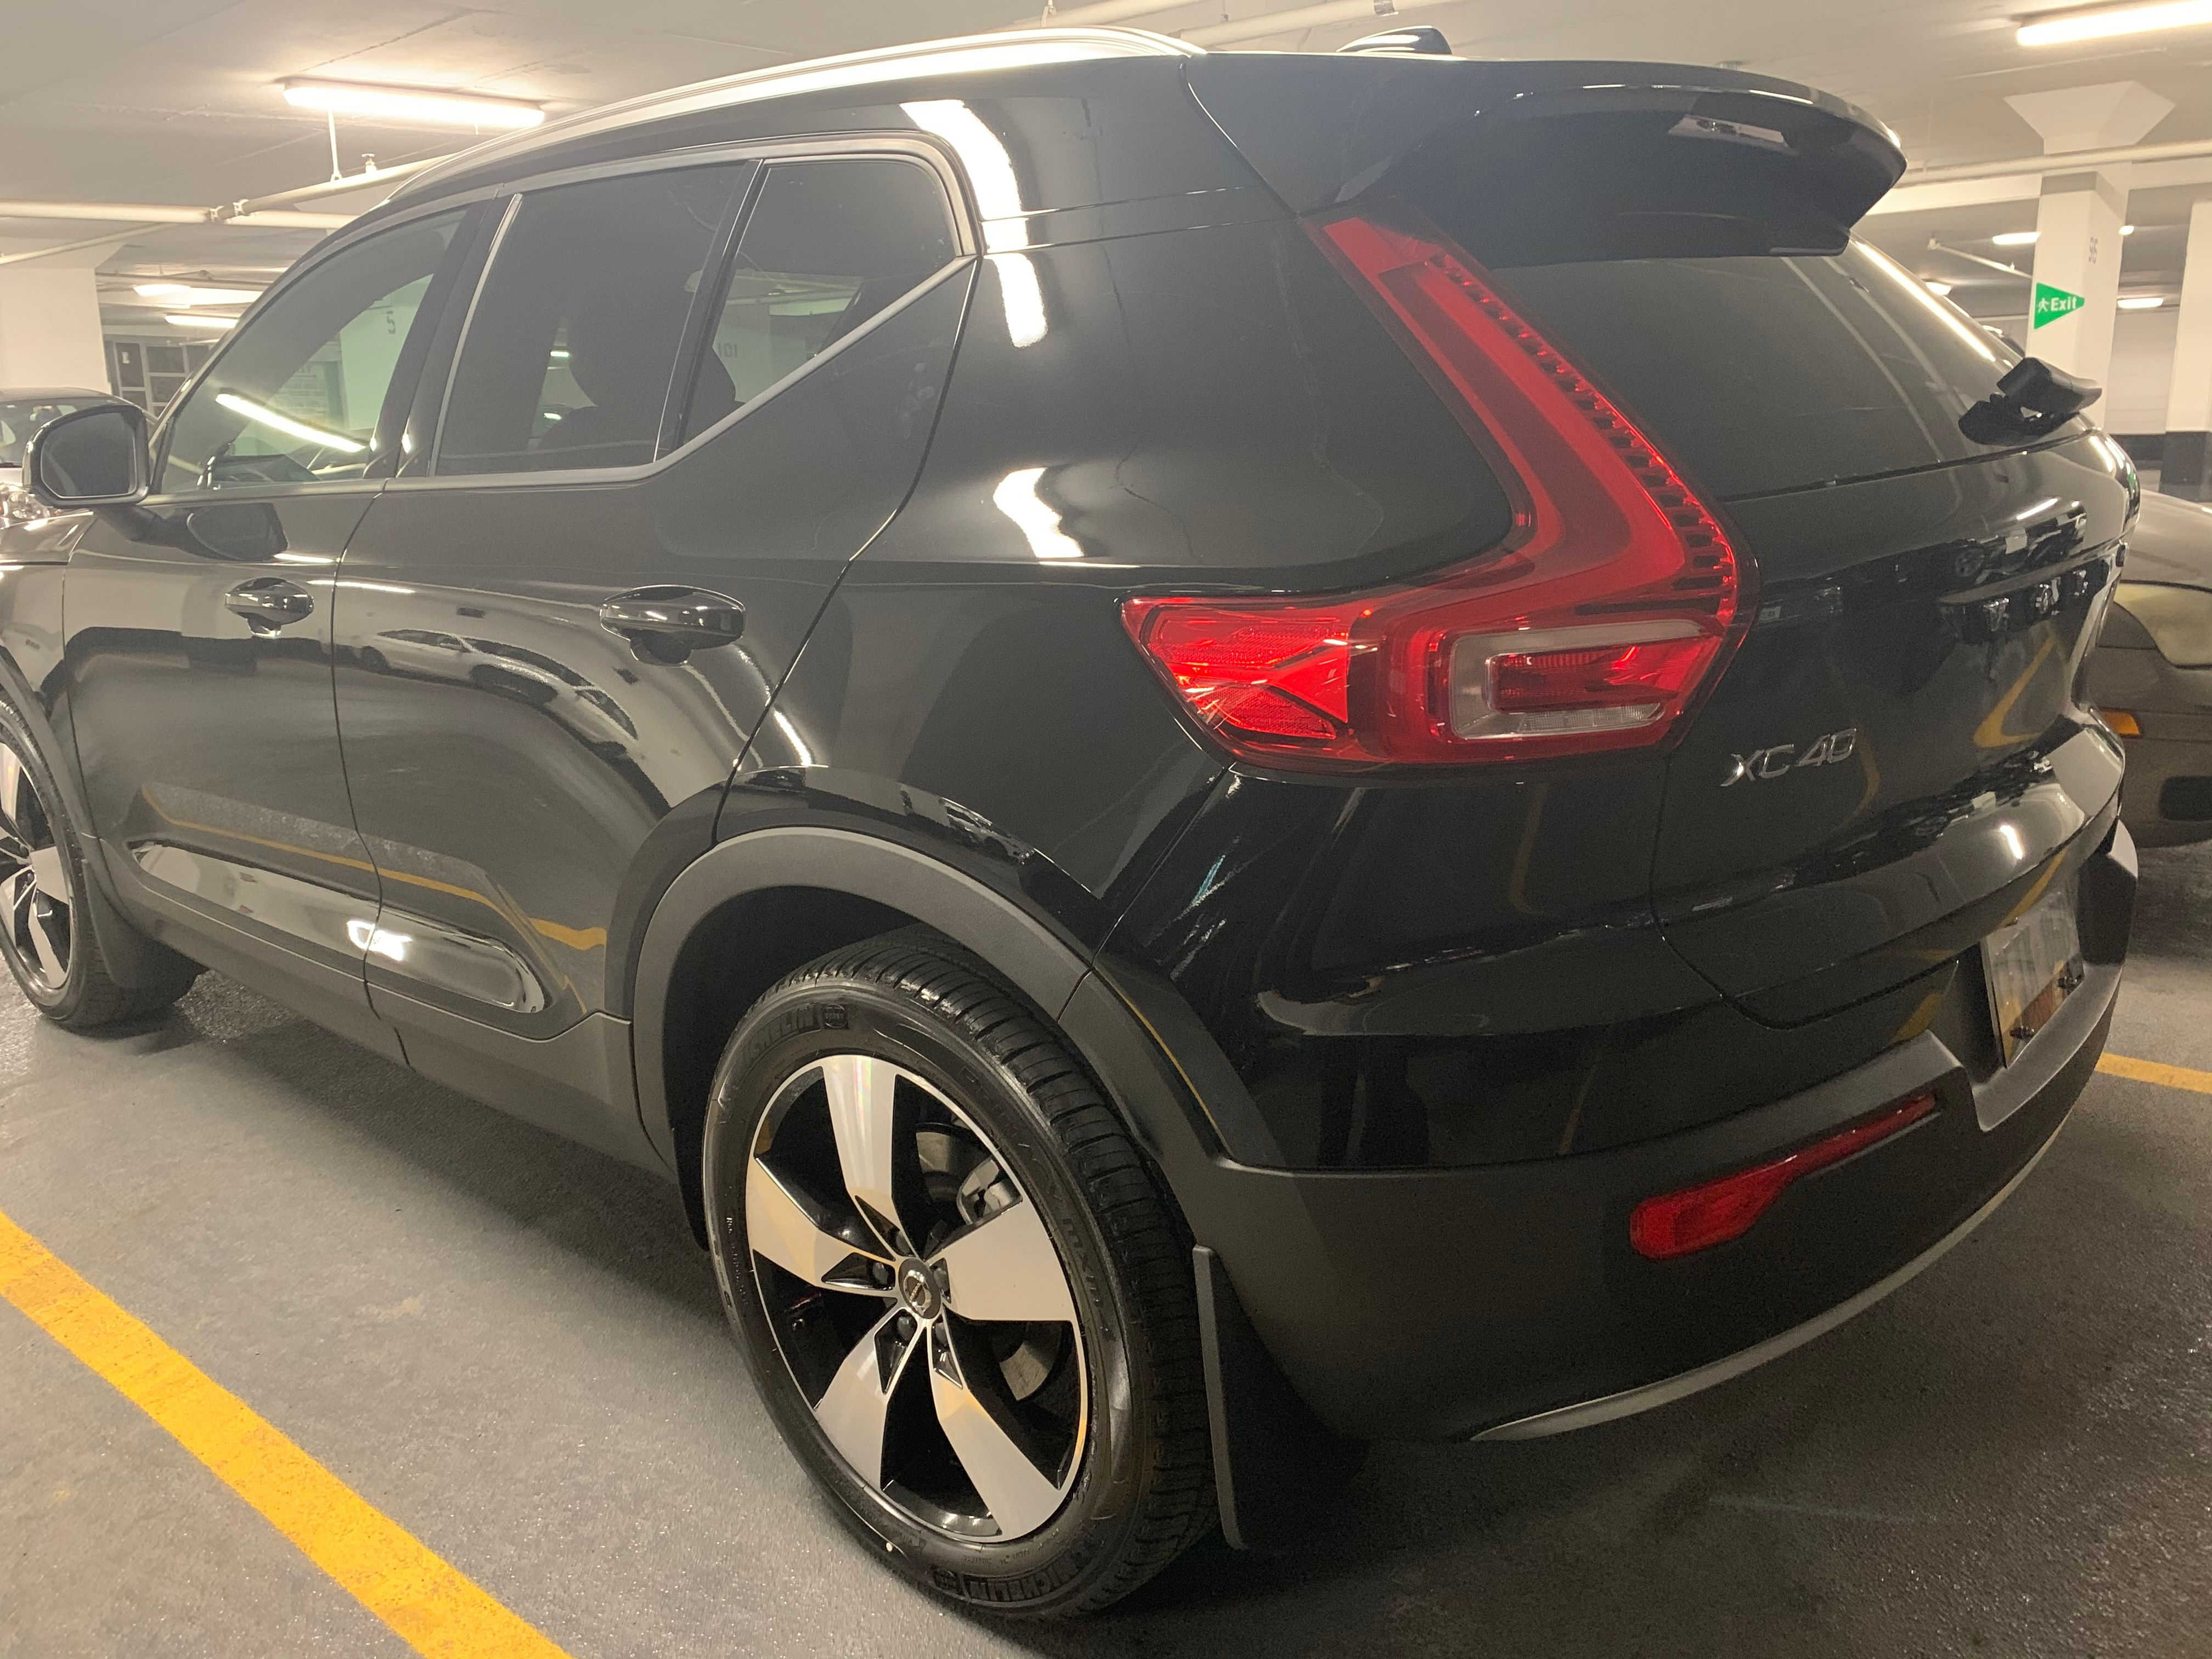 2020 Volvo XC40 null - INFOCAR - Toronto's Most Comprehensive New and Used Auto Trading Platform